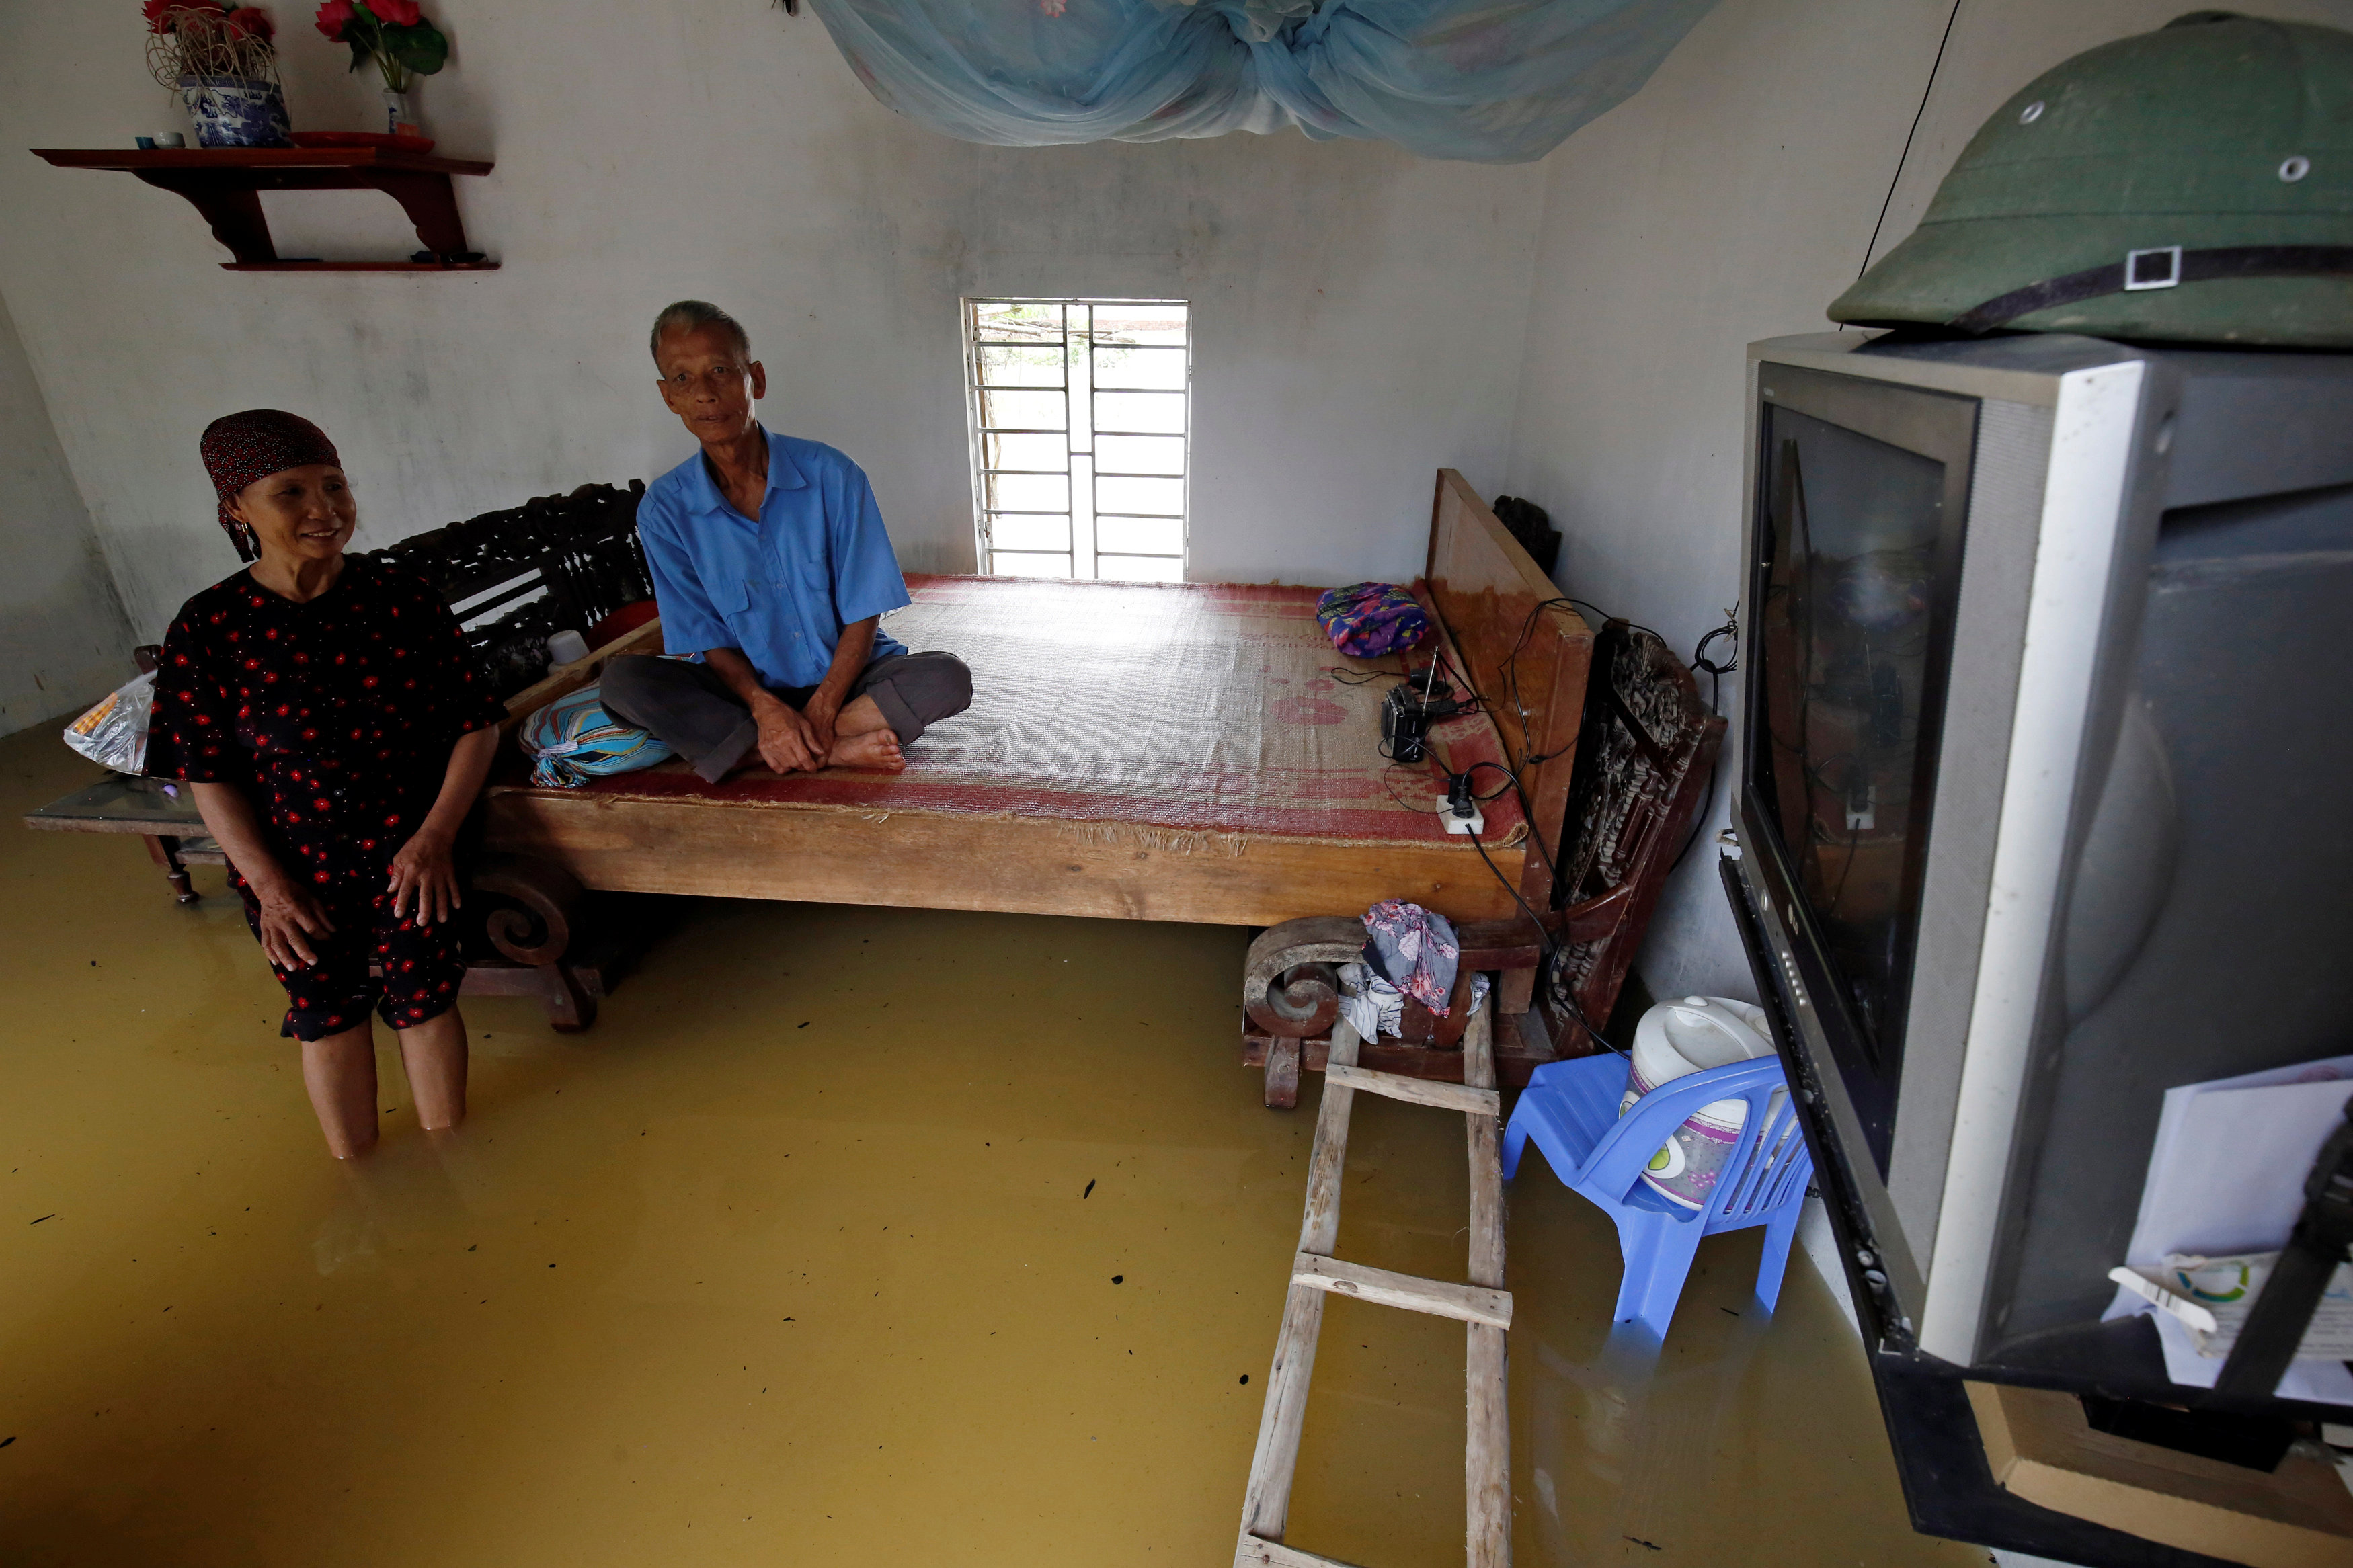 A couple watches TV in their flooded house after a tropical depression in Hanoi, Vietnam October 13, 2017. Photo: Reuters